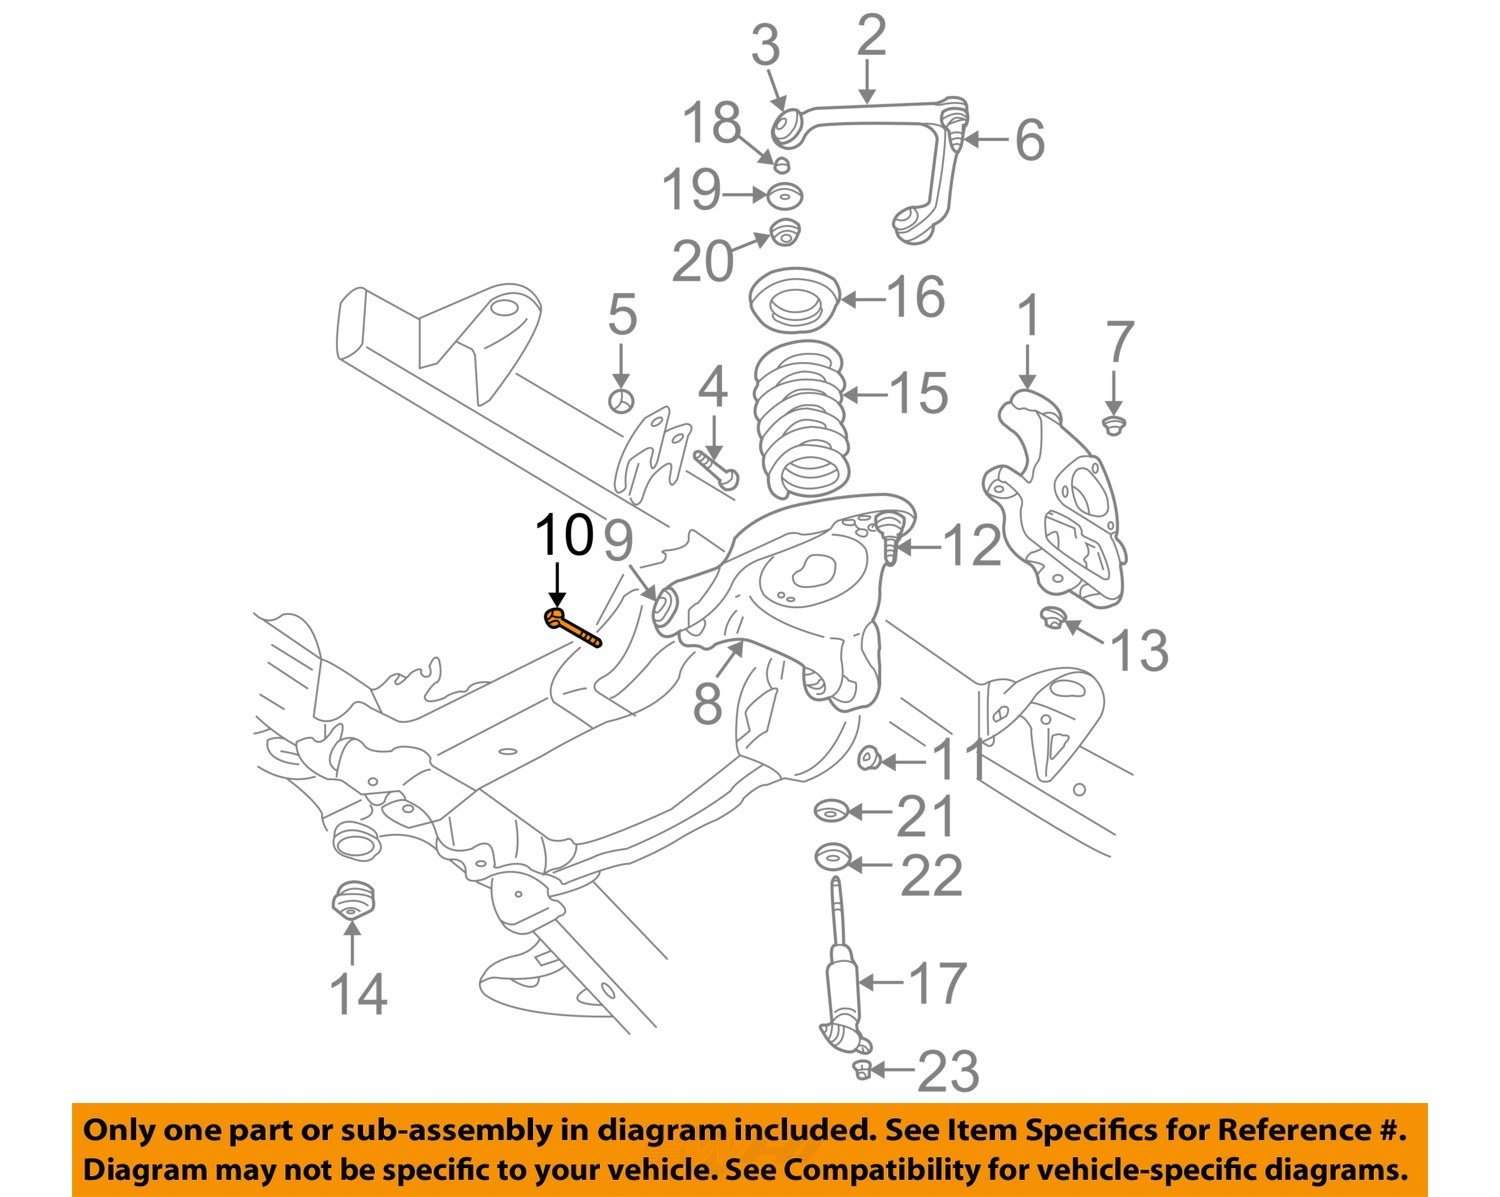 Dodge CHRYSLER OEM Ram 1500 Front Suspension-Lower Control Arm ...